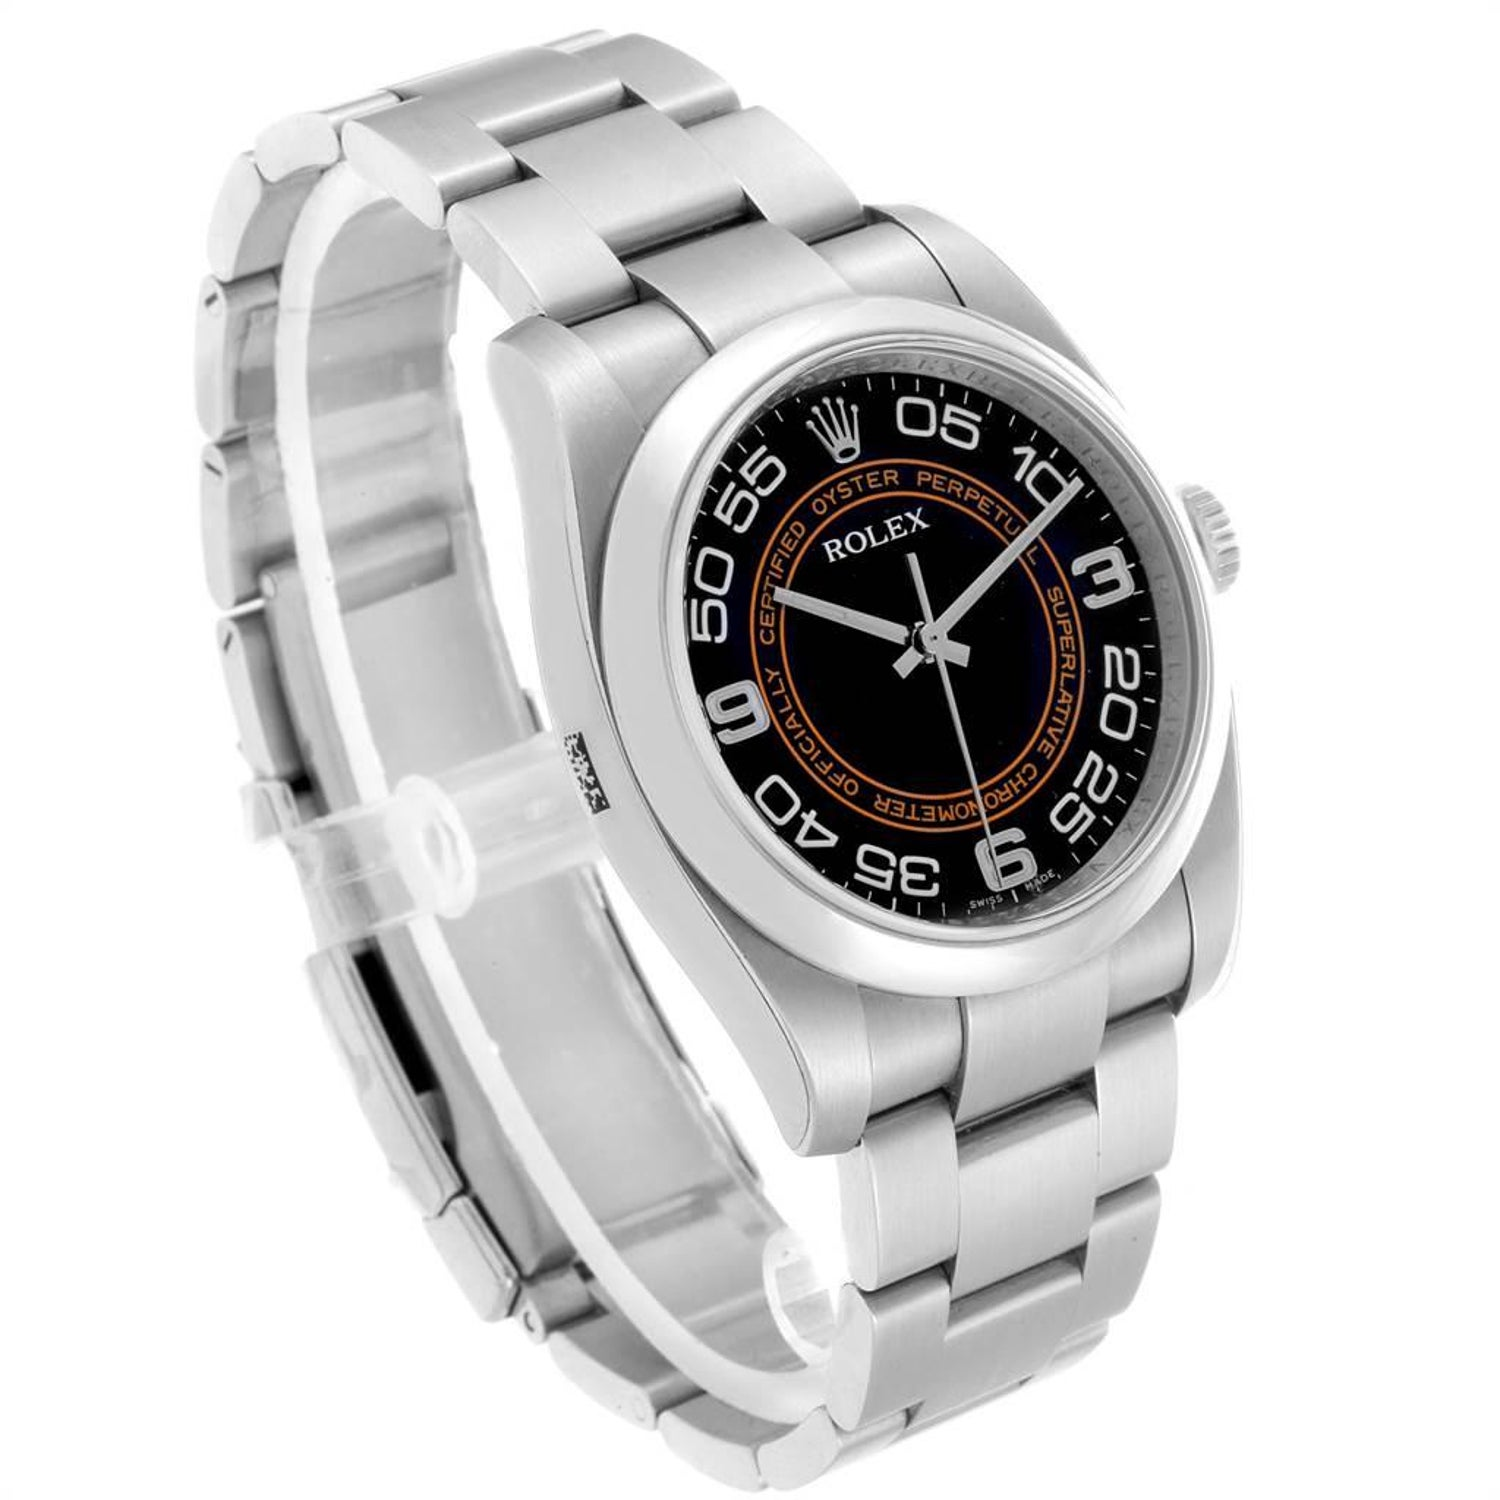 9971d174a6a Rolex Oyster Perpetual 36 White Harley Dial Men's Watch 116000 Unworn For  Sale at 1stdibs